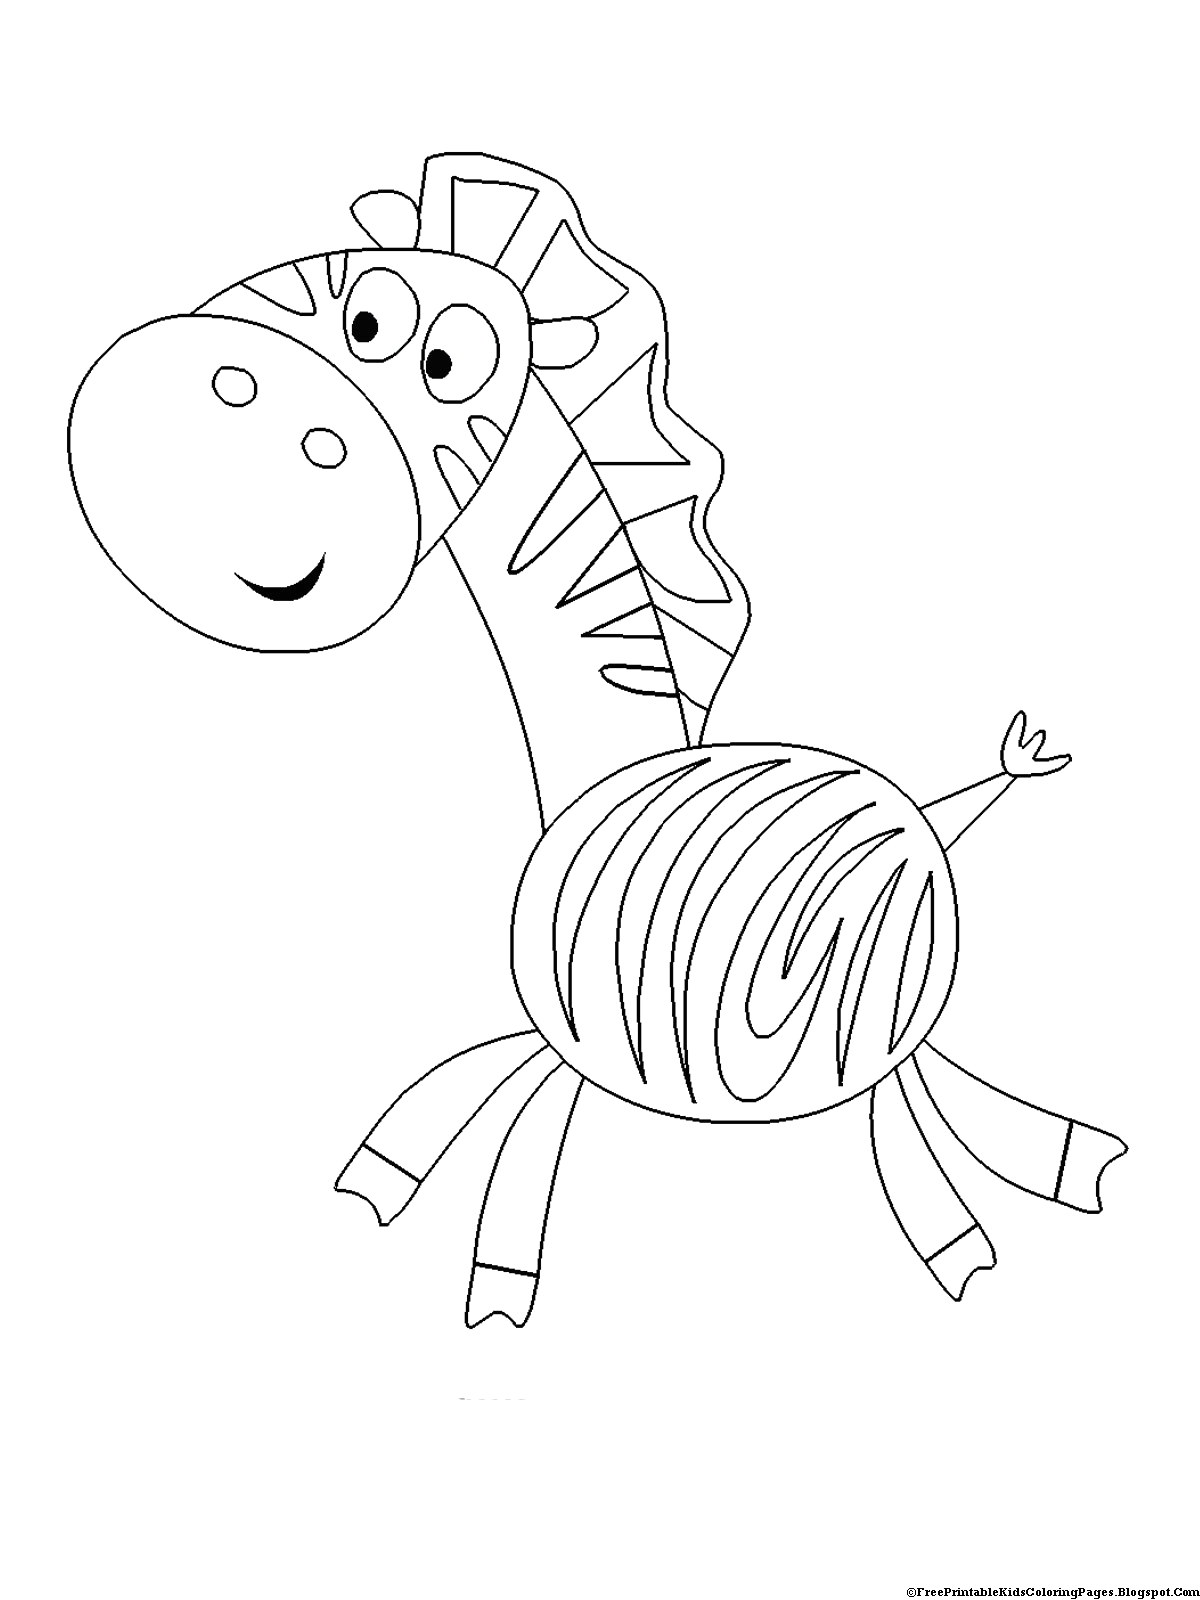 Free Coloring Pages to Print for toddlers Zebra Coloring Pages Free Printable Kids Coloring Pages